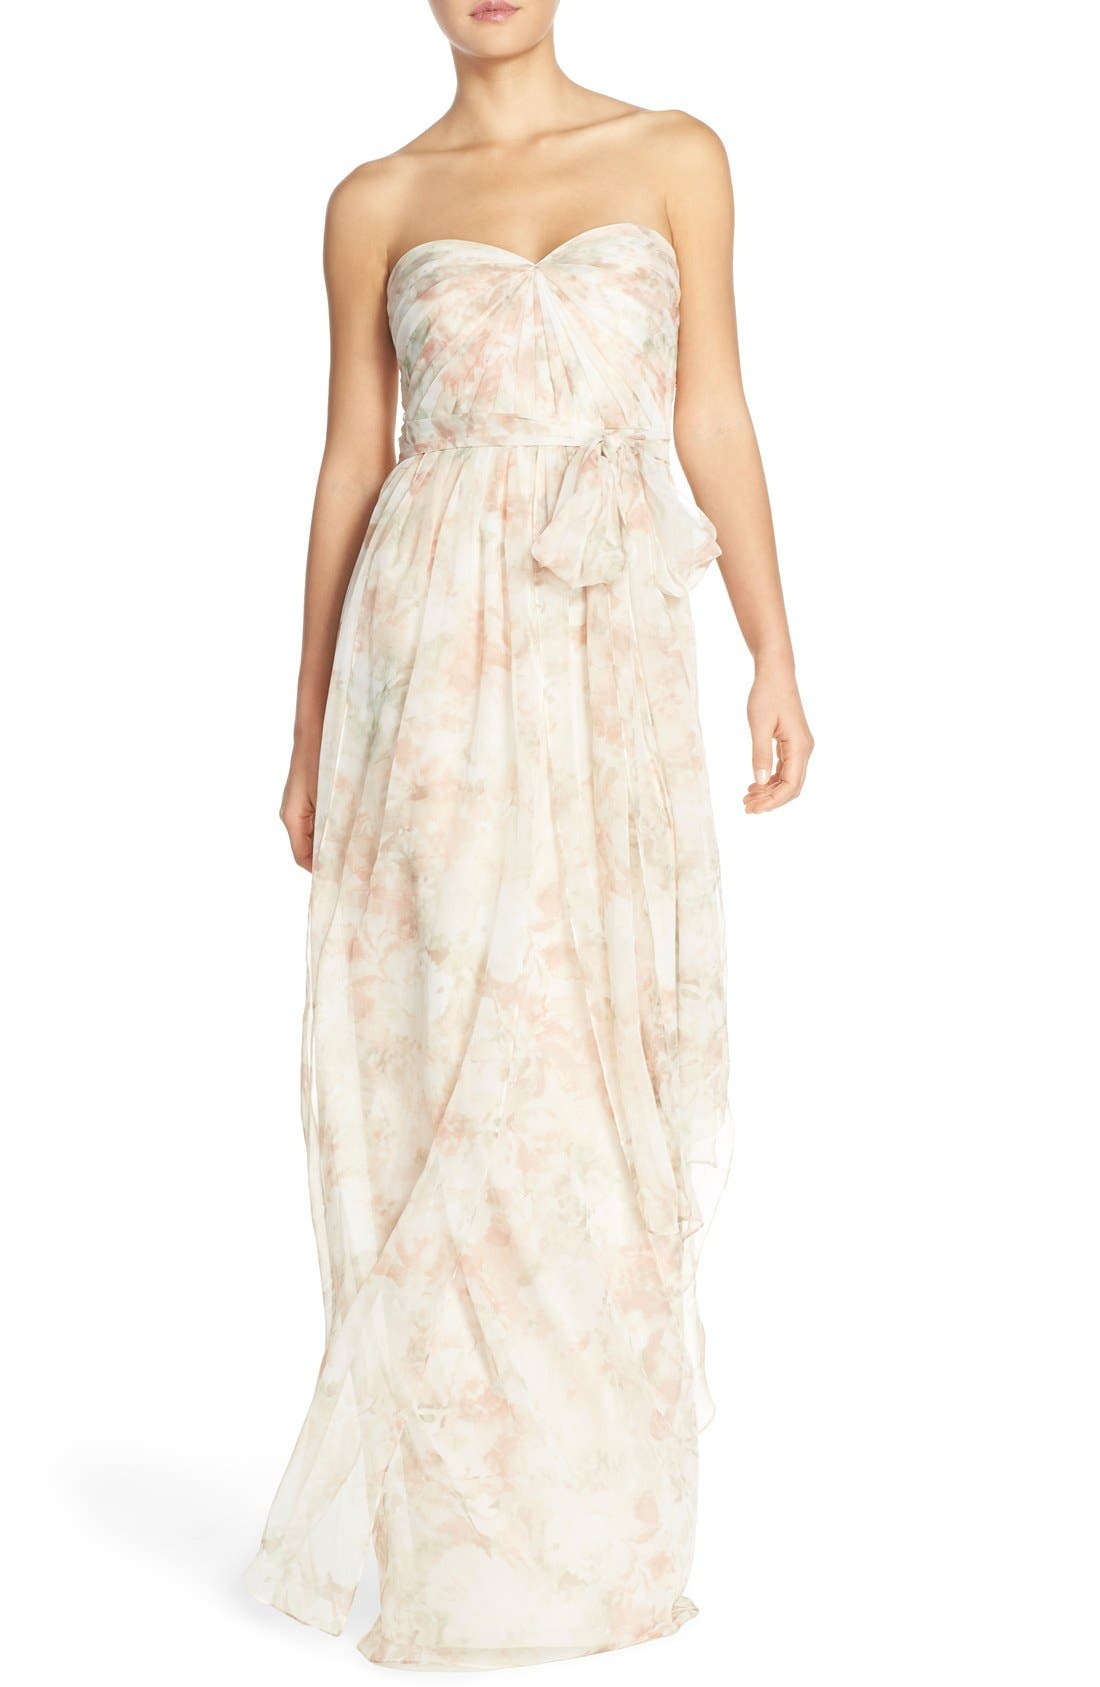 Nyla Floral Print Convertible Strapless Chiffon Gown,                         Main,                         color, Blush Multi